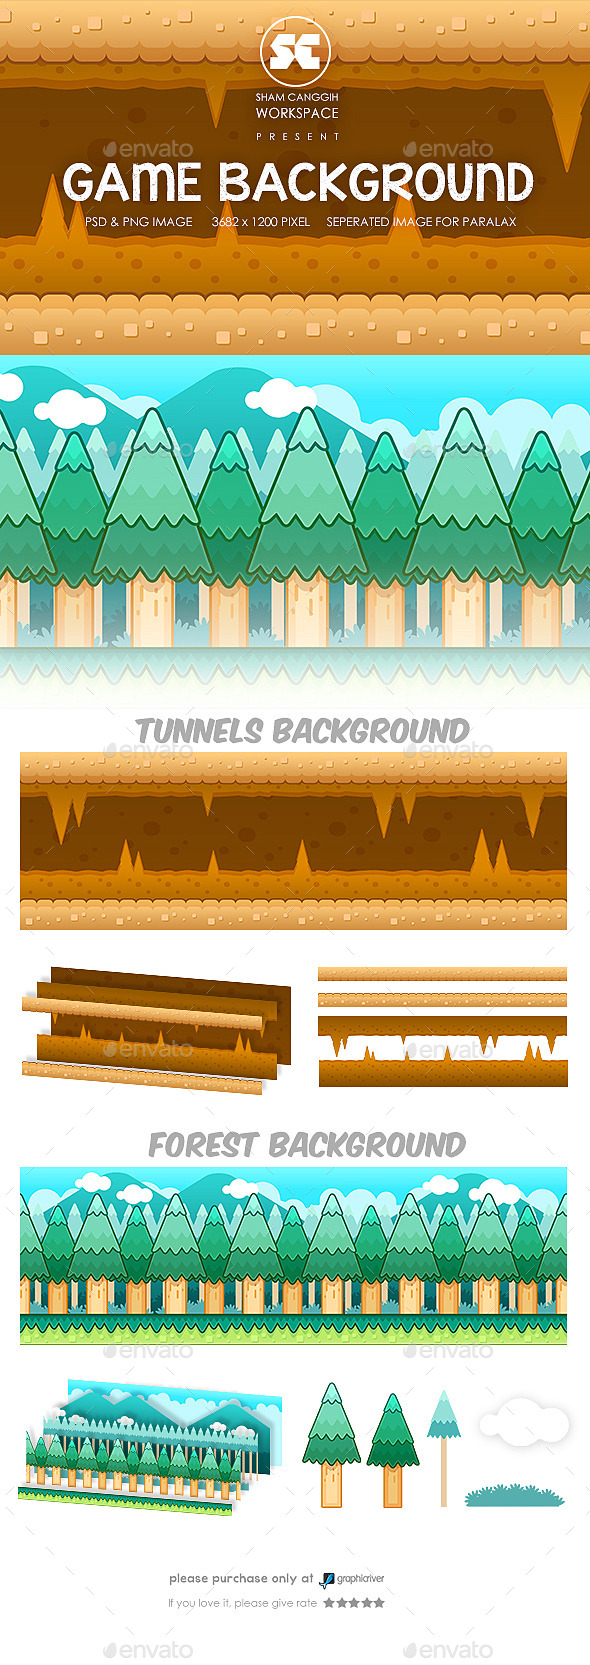 Game Background : Tunnel & Forest - Backgrounds Game Assets